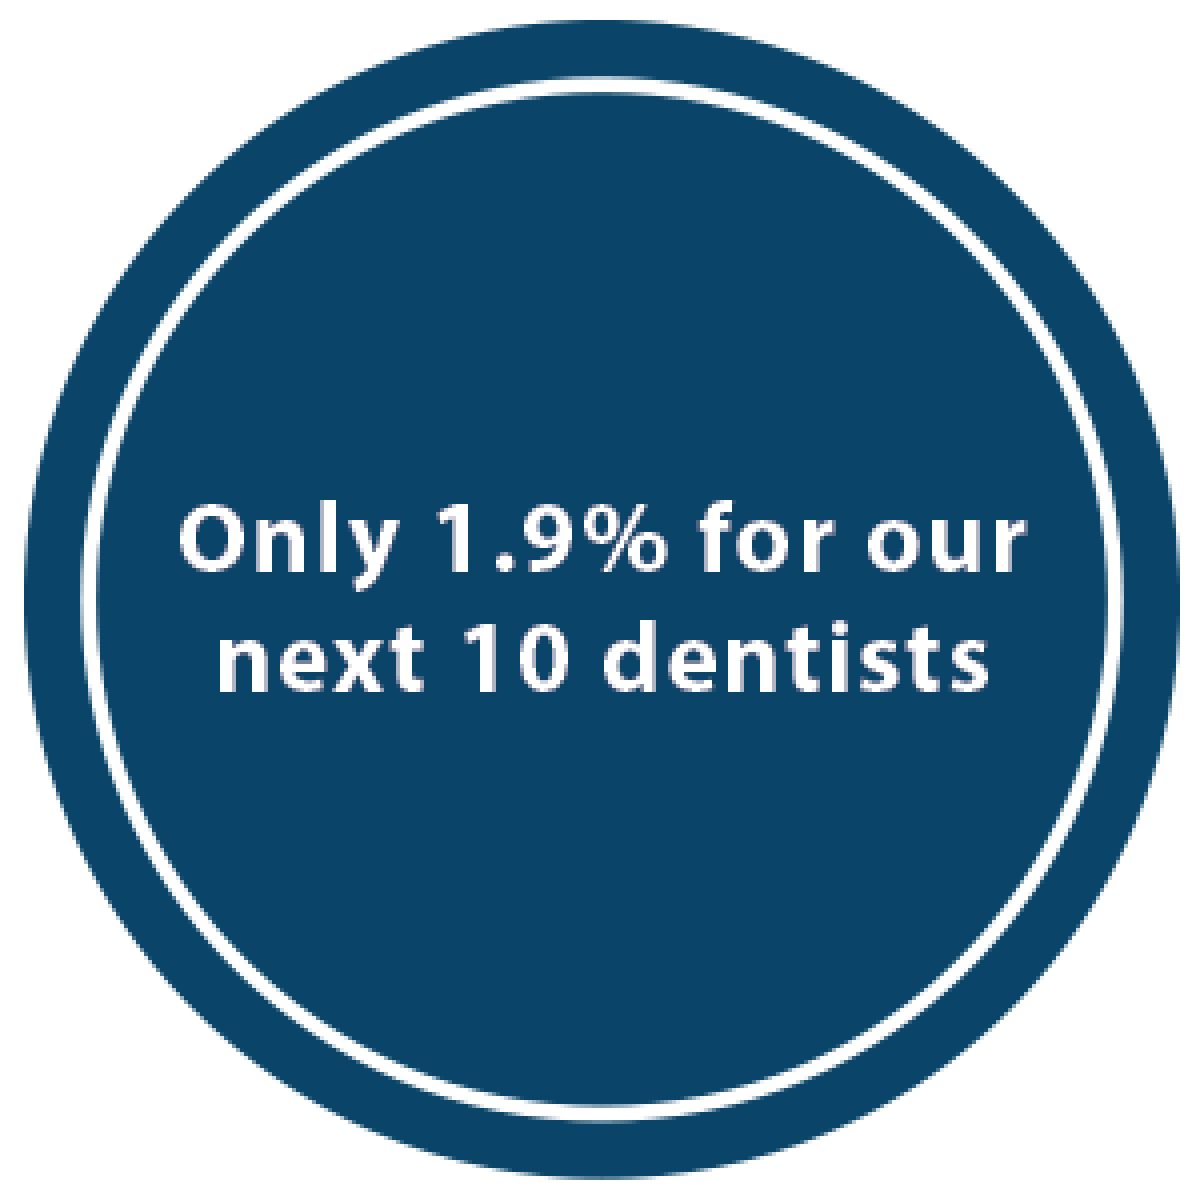 Only 1.9% for our next 10 dentists